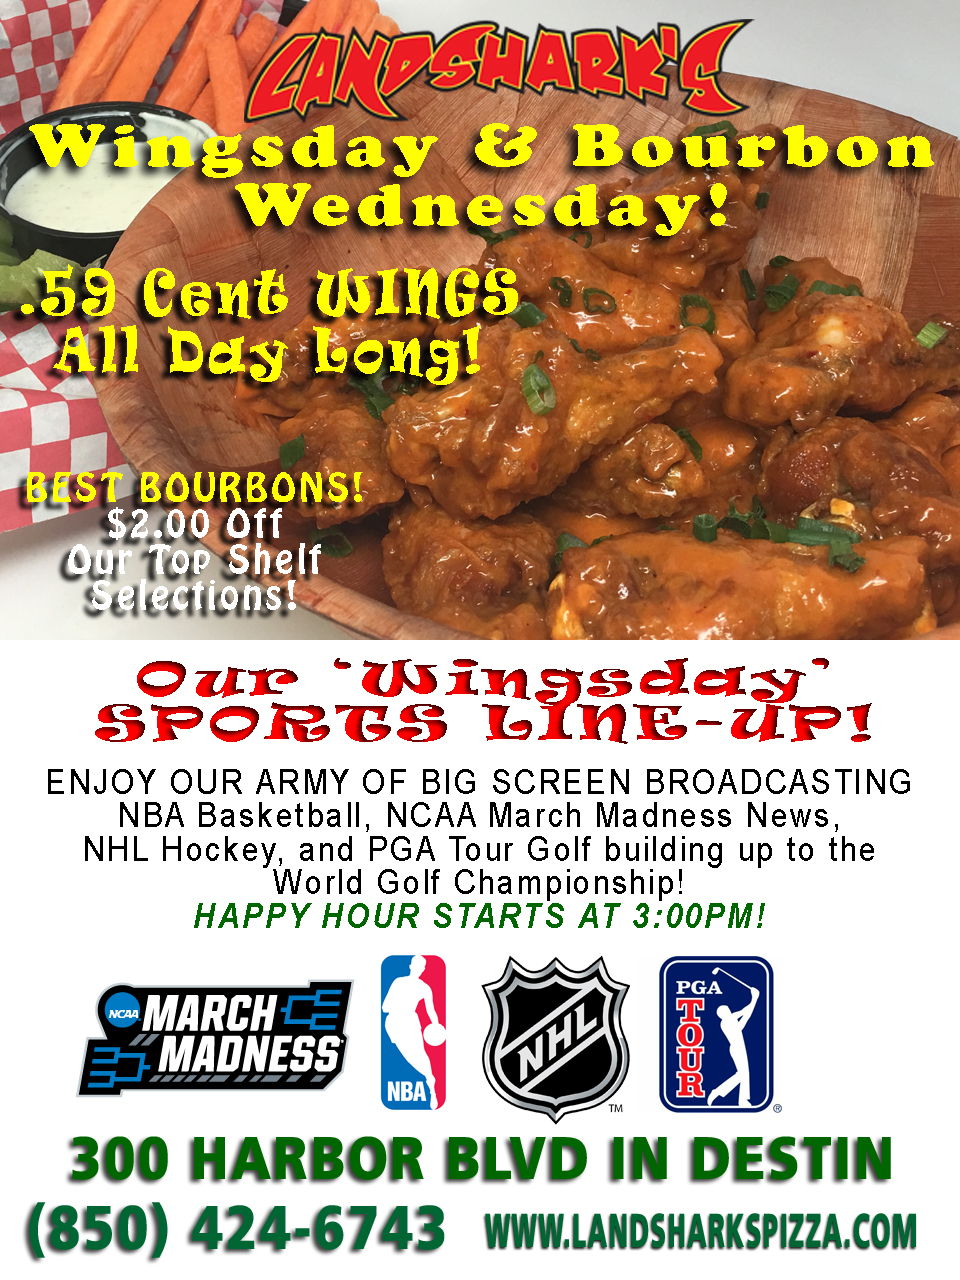 Landsharks Destin FL Hot Wings Wednesday 01